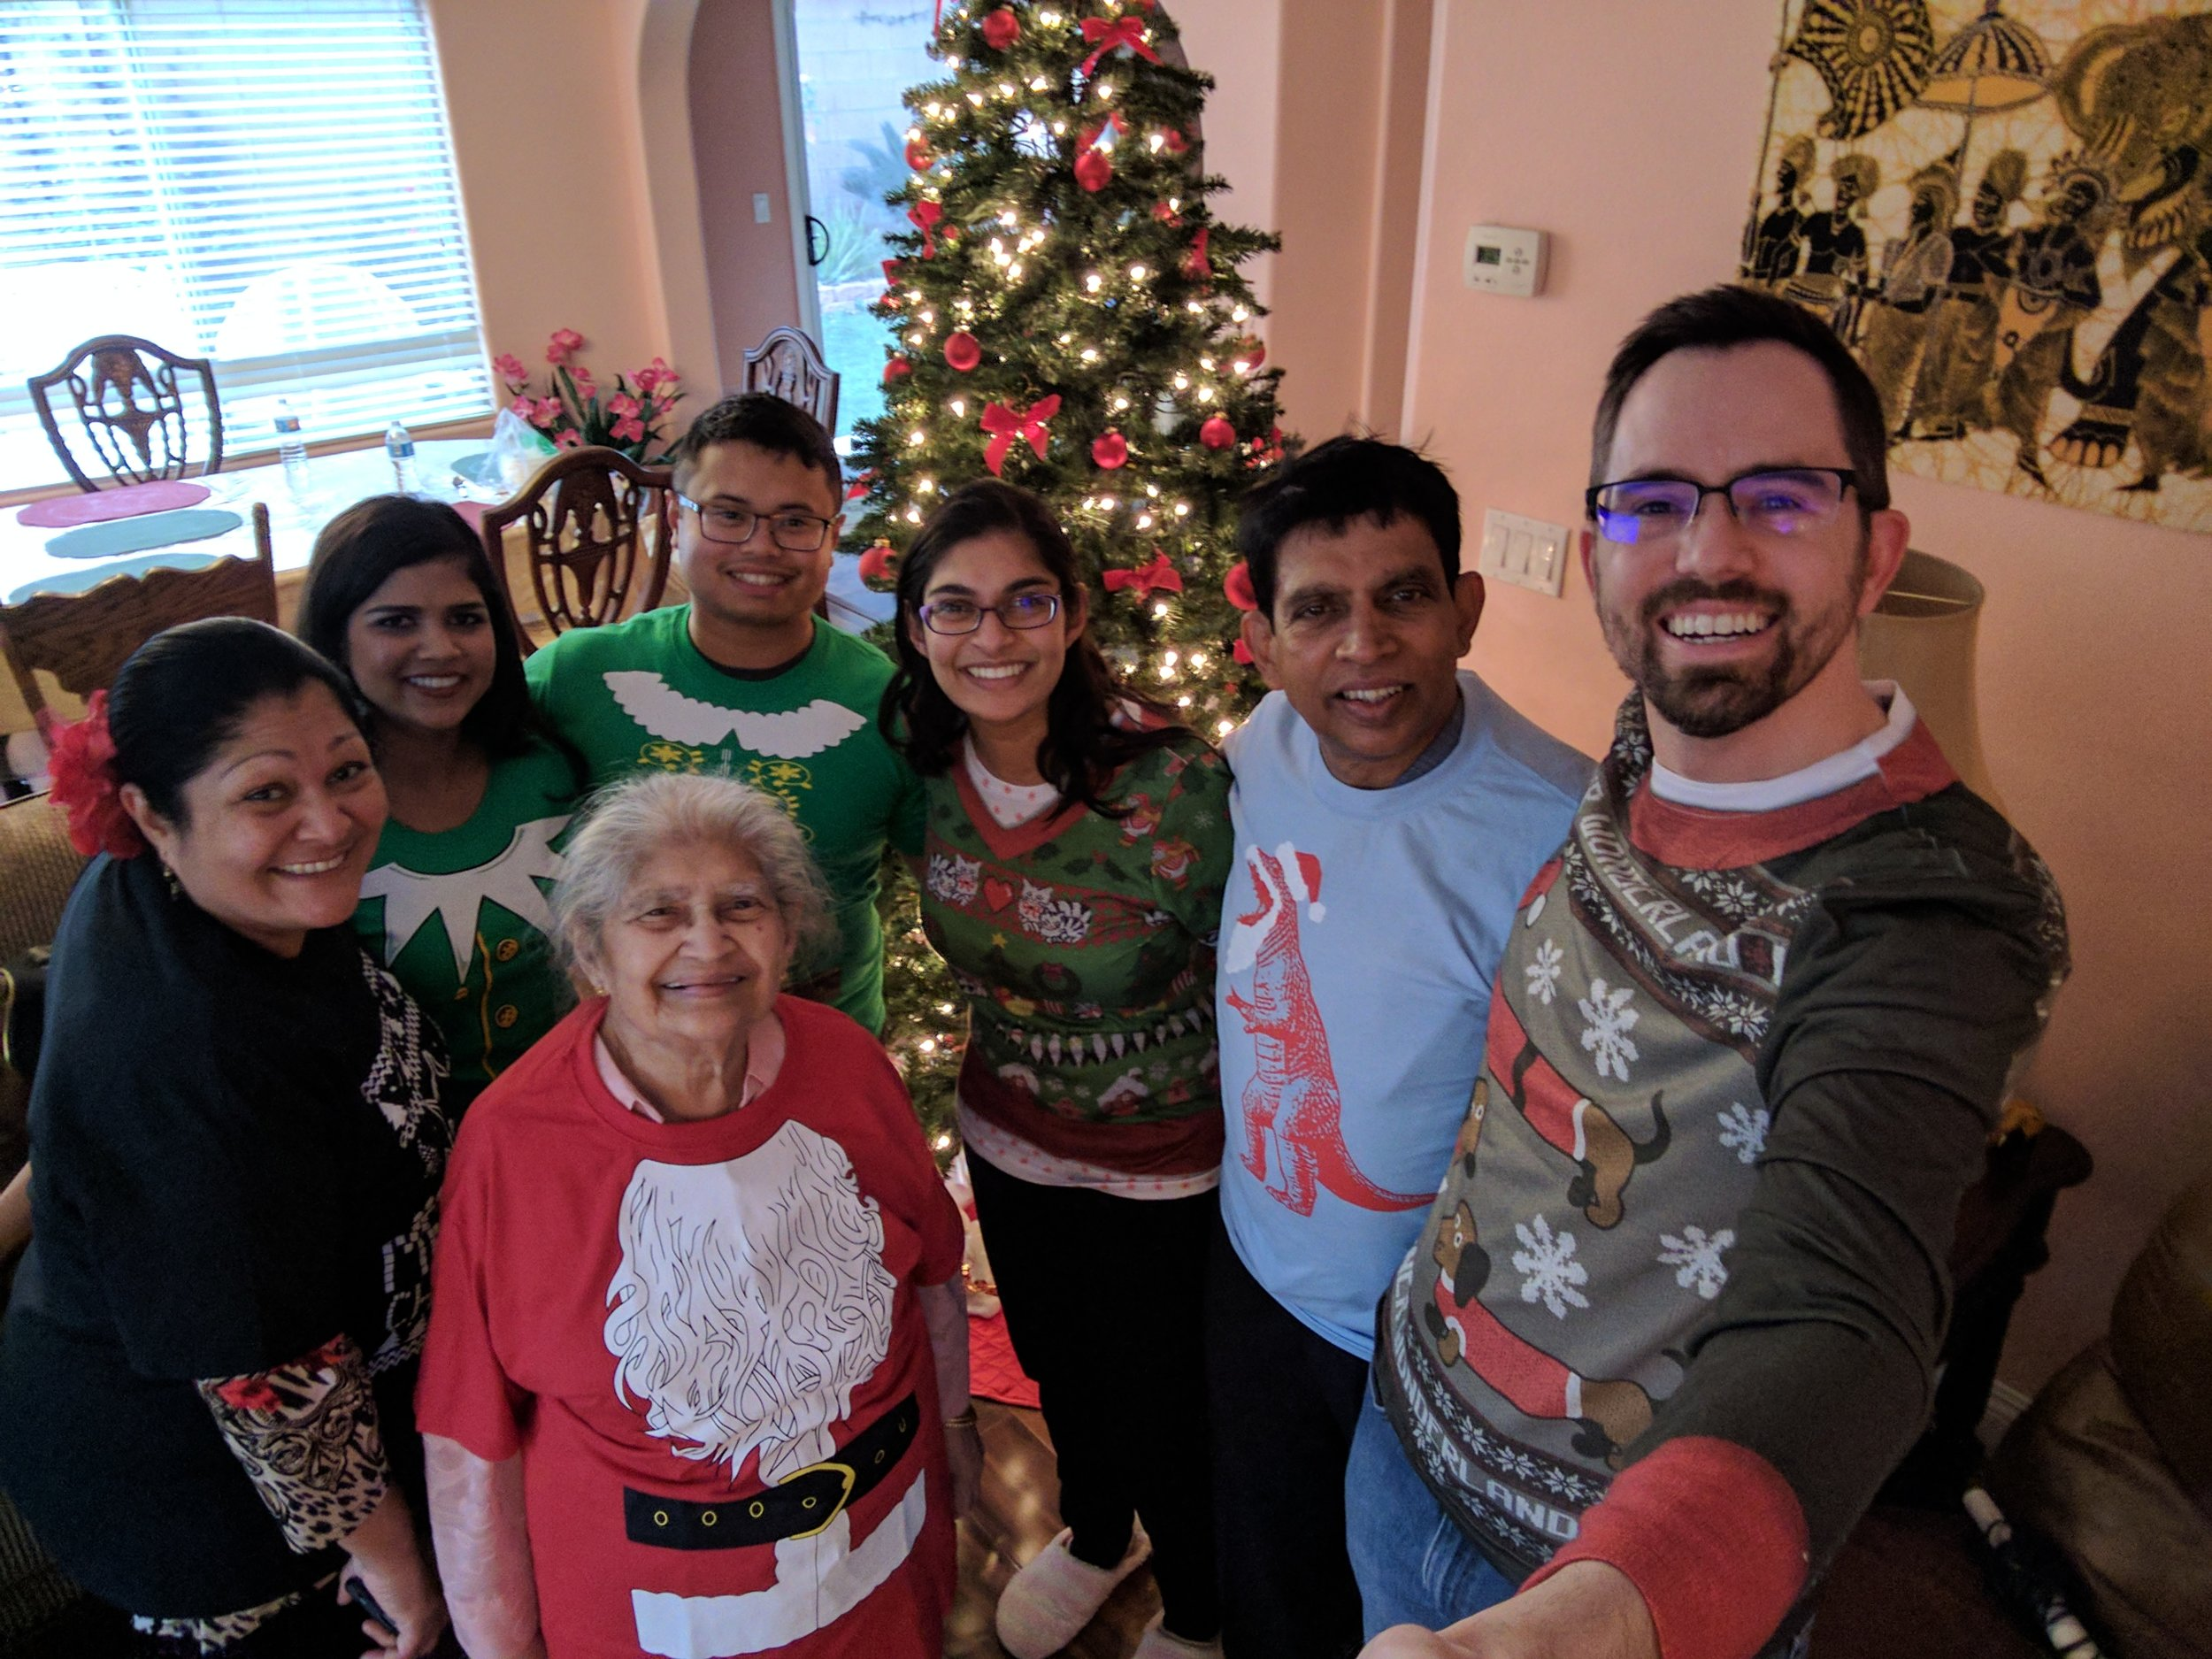 Ryan Hall and his wife Erandhi with their family at Christmas